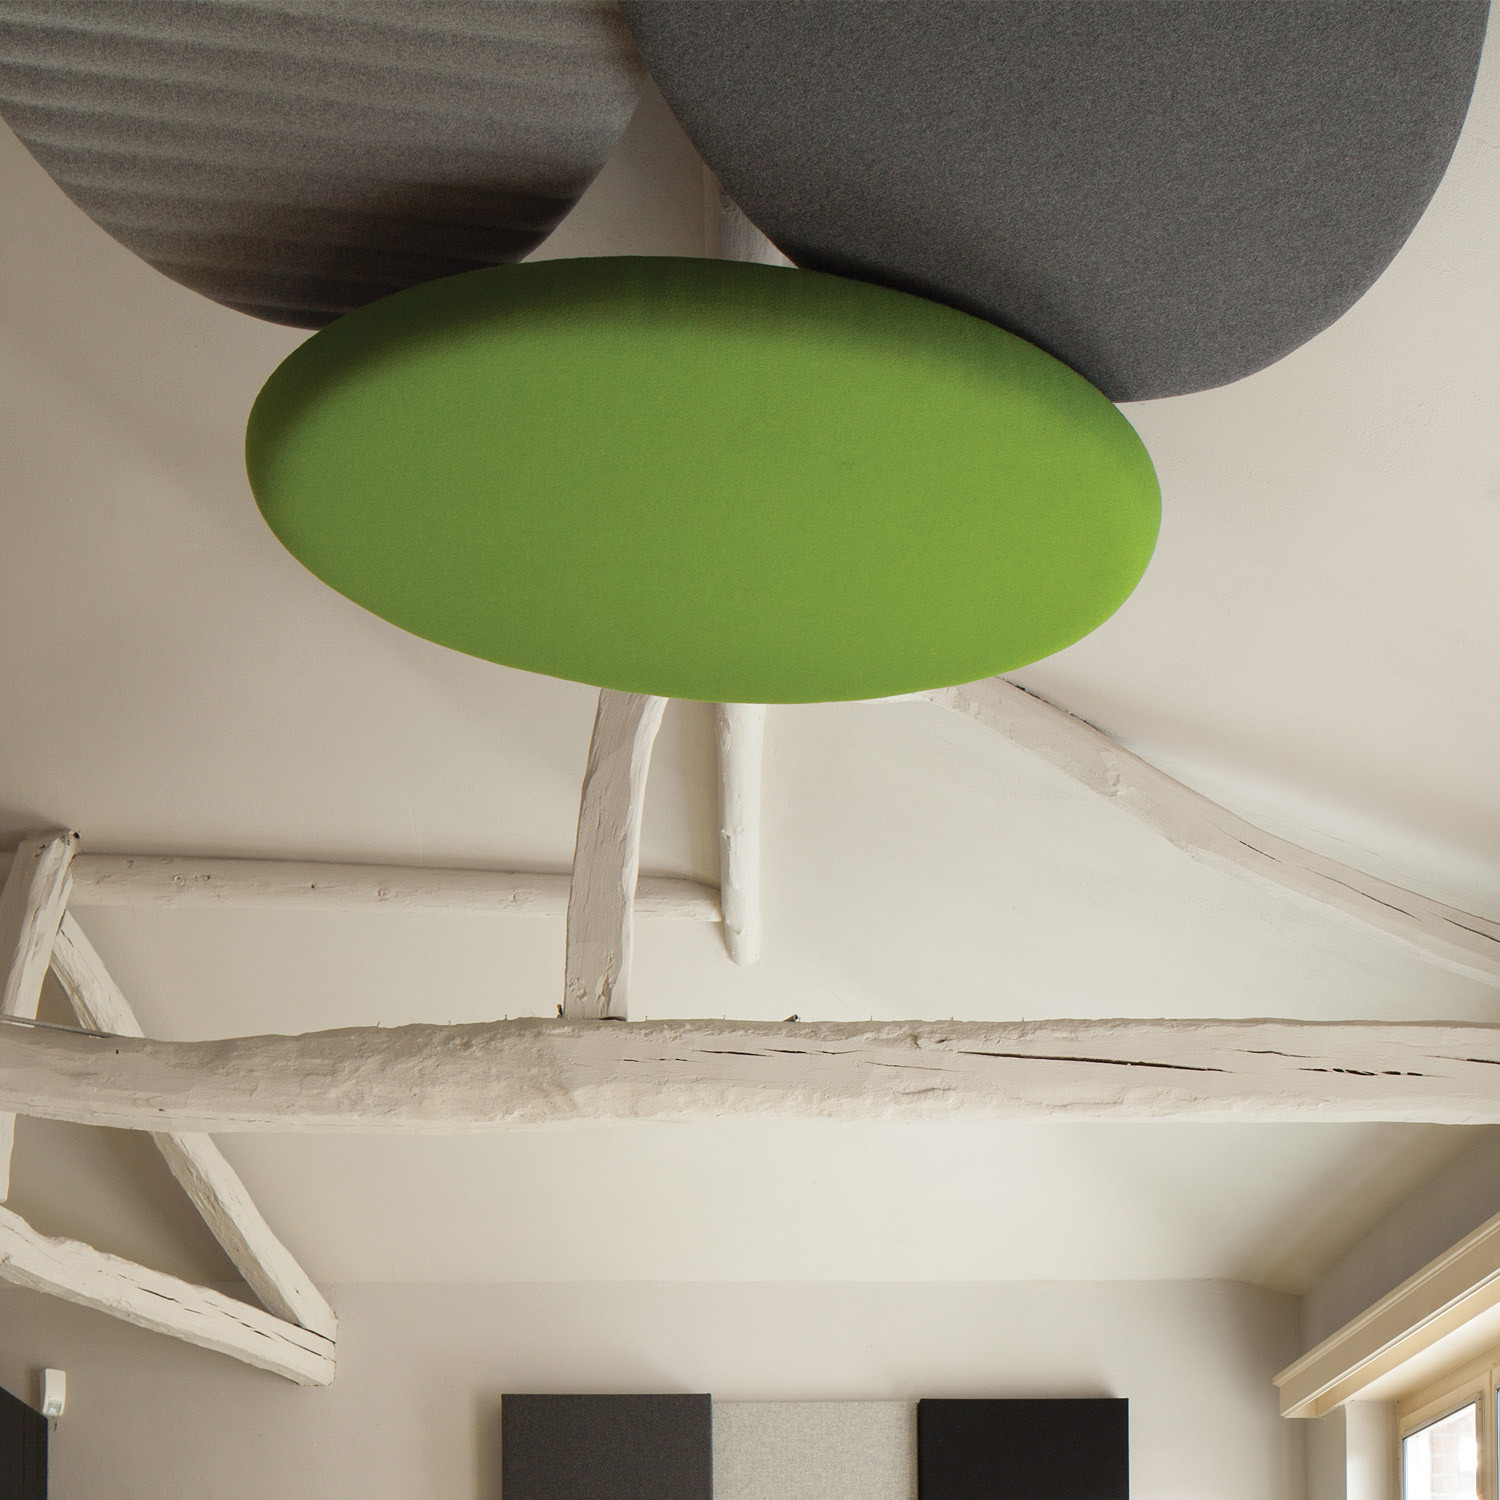 Buzziland Acoustic Ceiling Panels